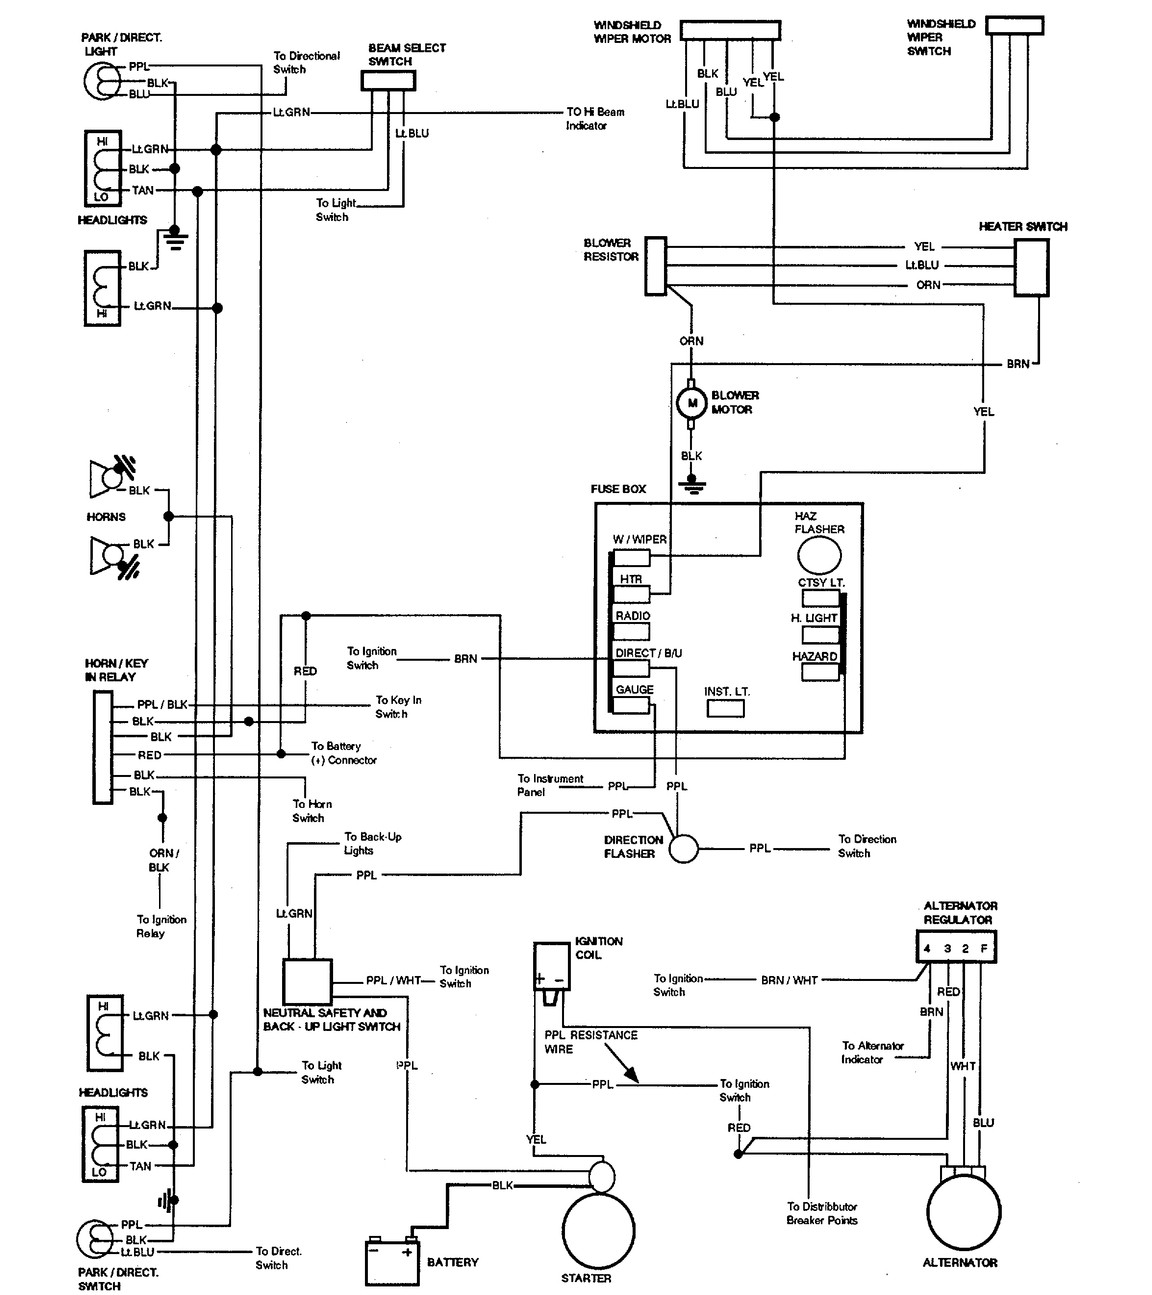 88 monte carlo wiring diagram - wiring diagram var mug-unique-a -  mug-unique-a.viblock.it  viblock.it